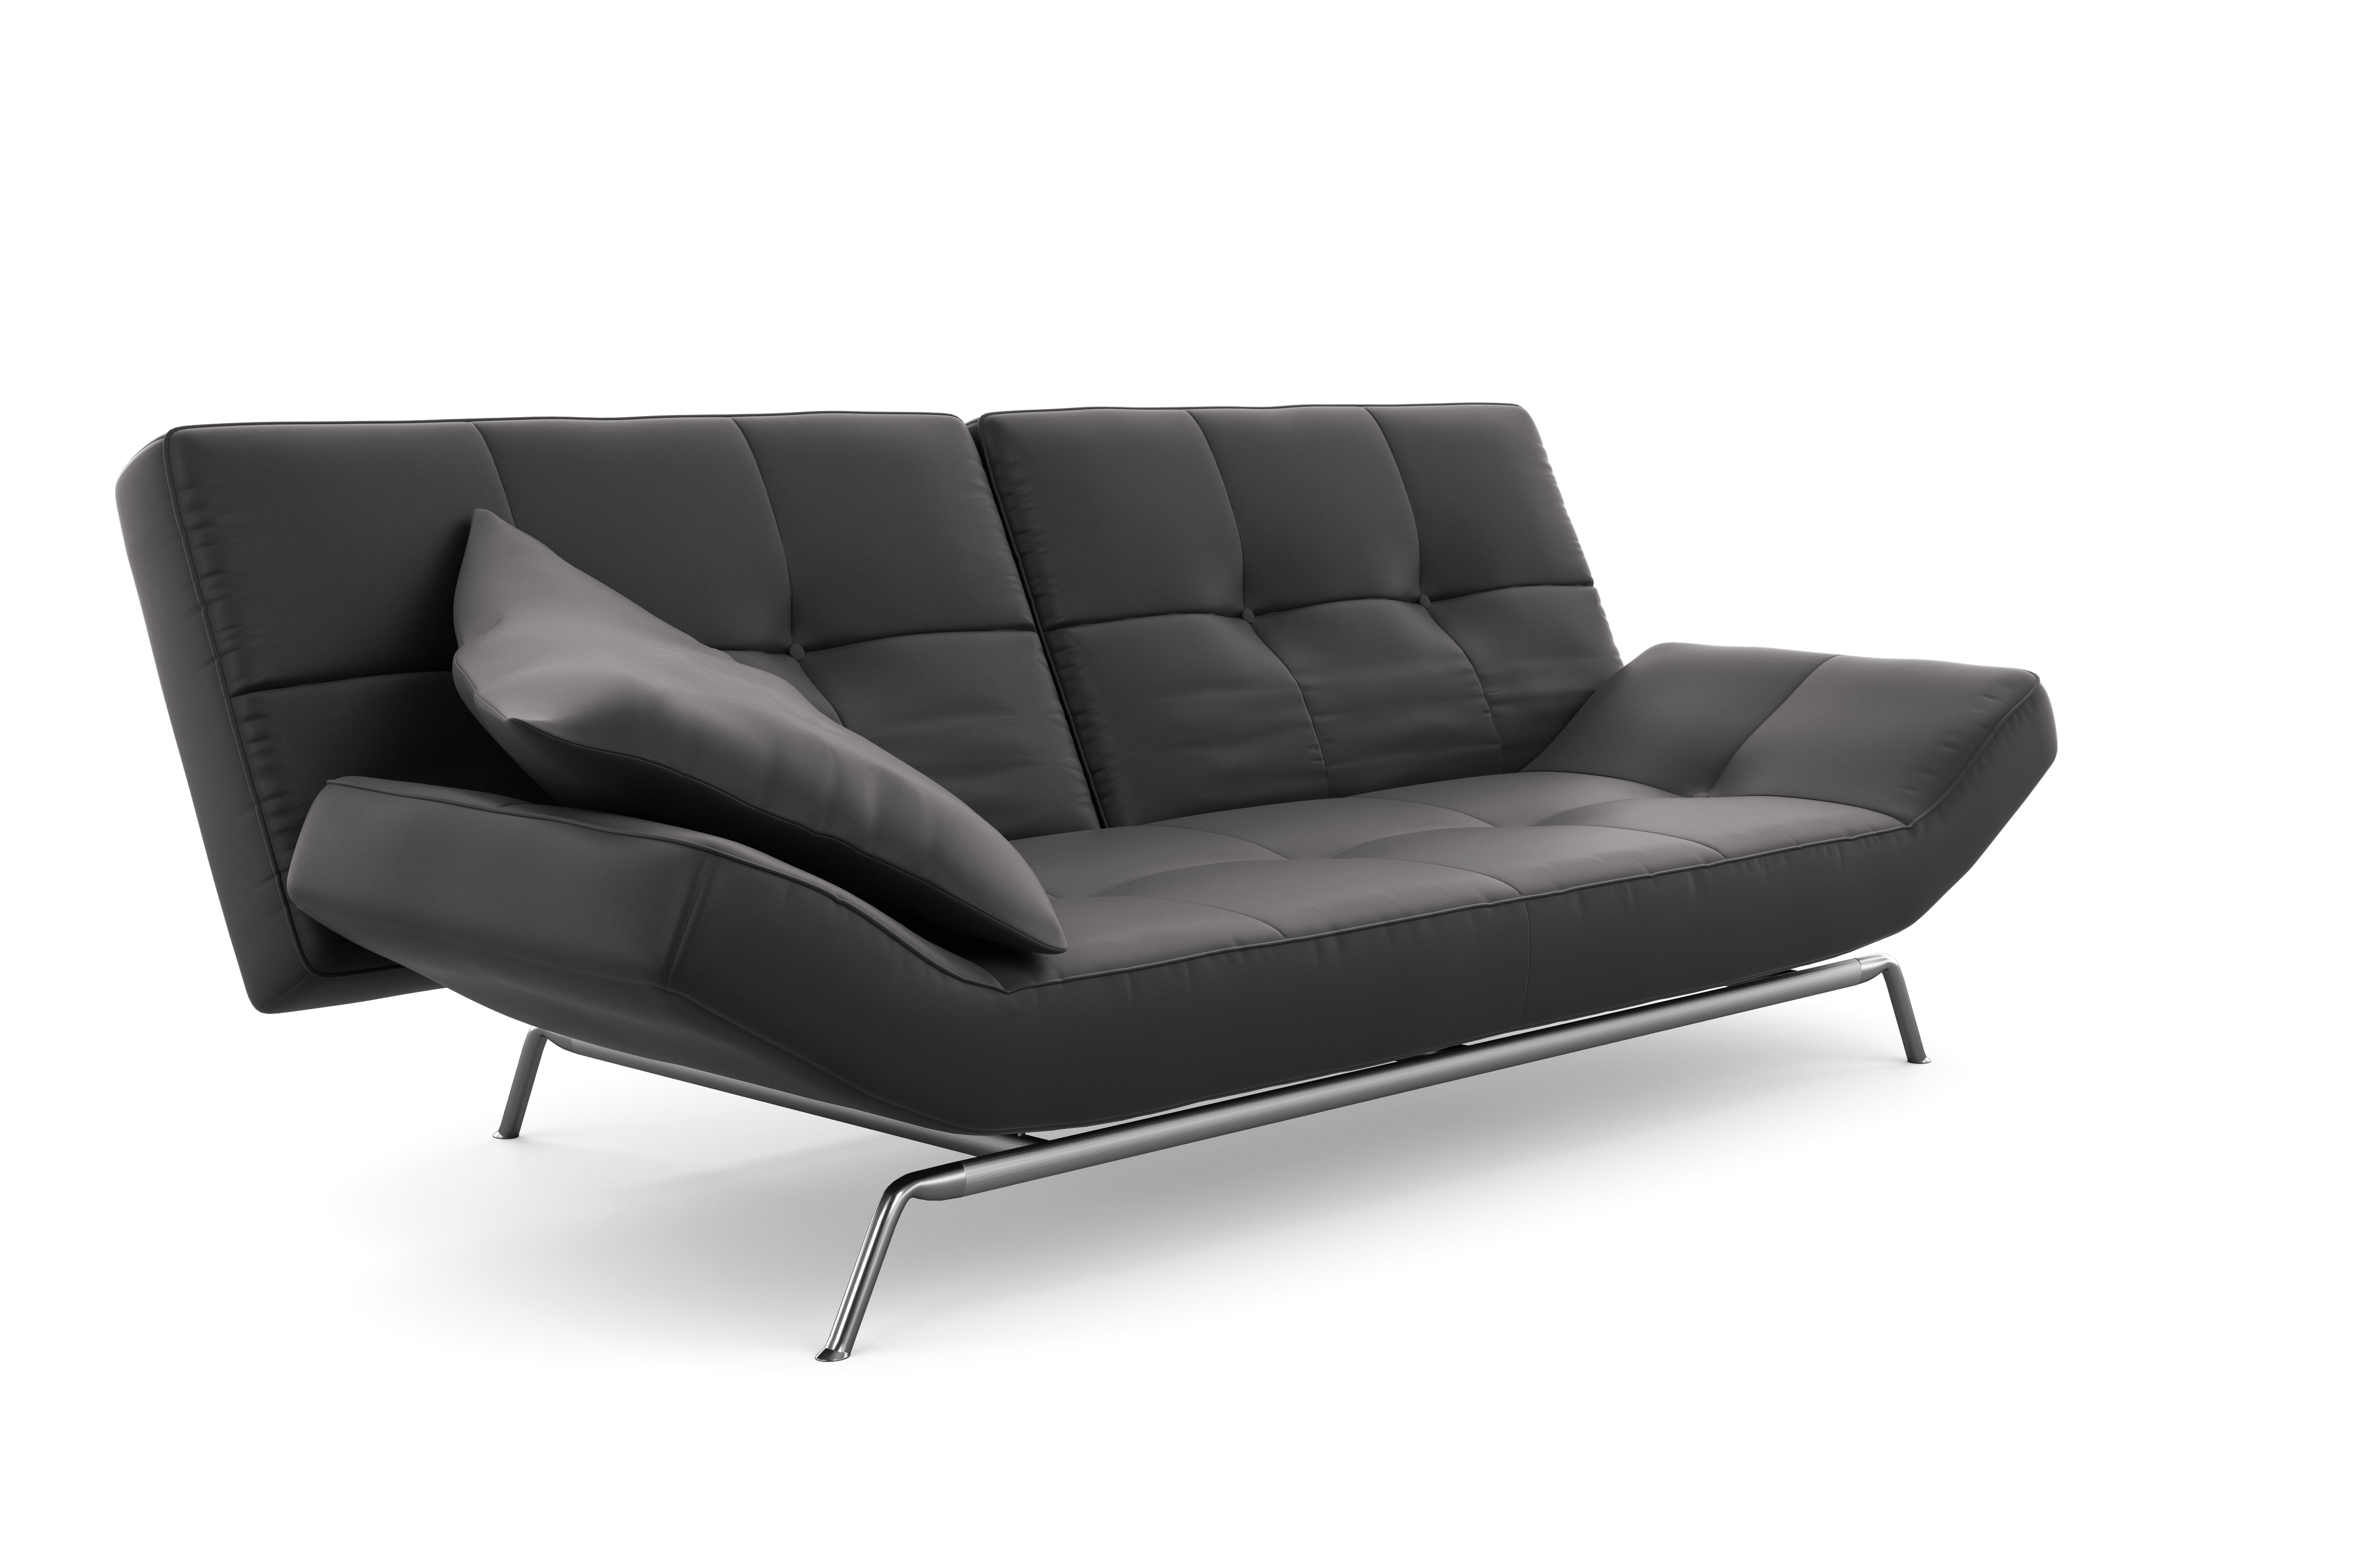 schlafsofas aus polen am besten bewertete produkte in der kategorie sofas couches. Black Bedroom Furniture Sets. Home Design Ideas